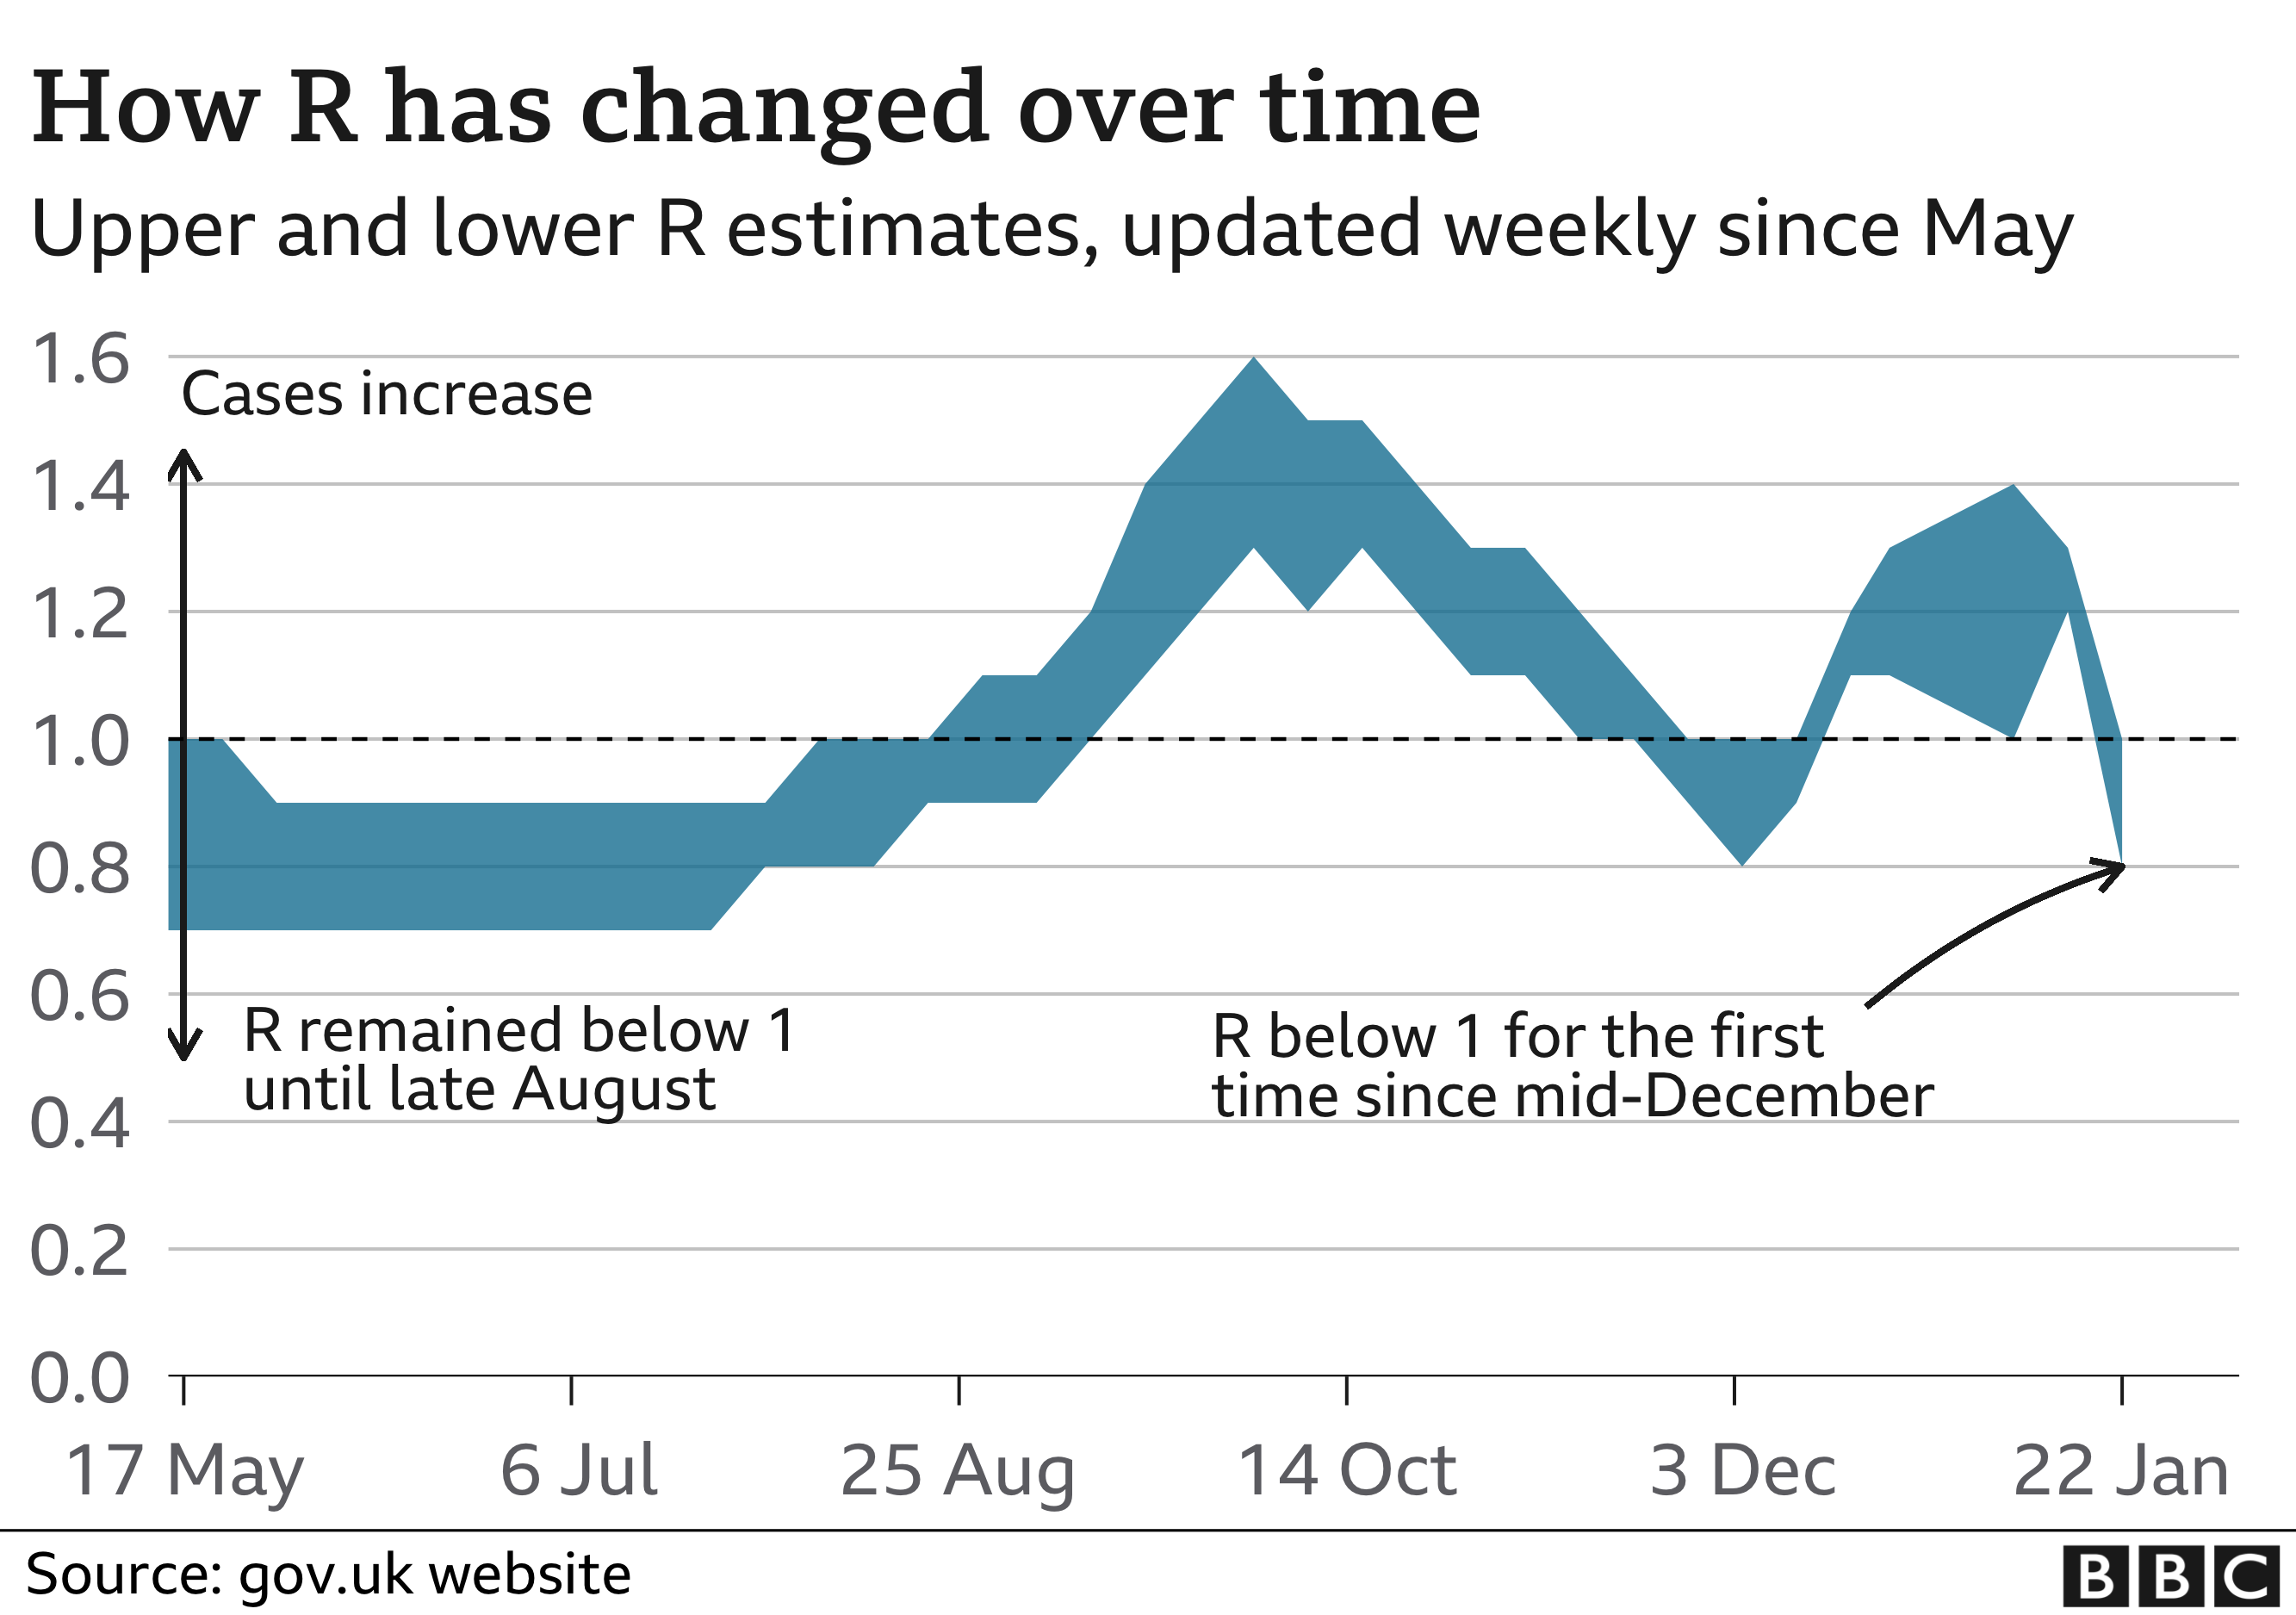 Chart showing how the R number estimates have changed since May 2020